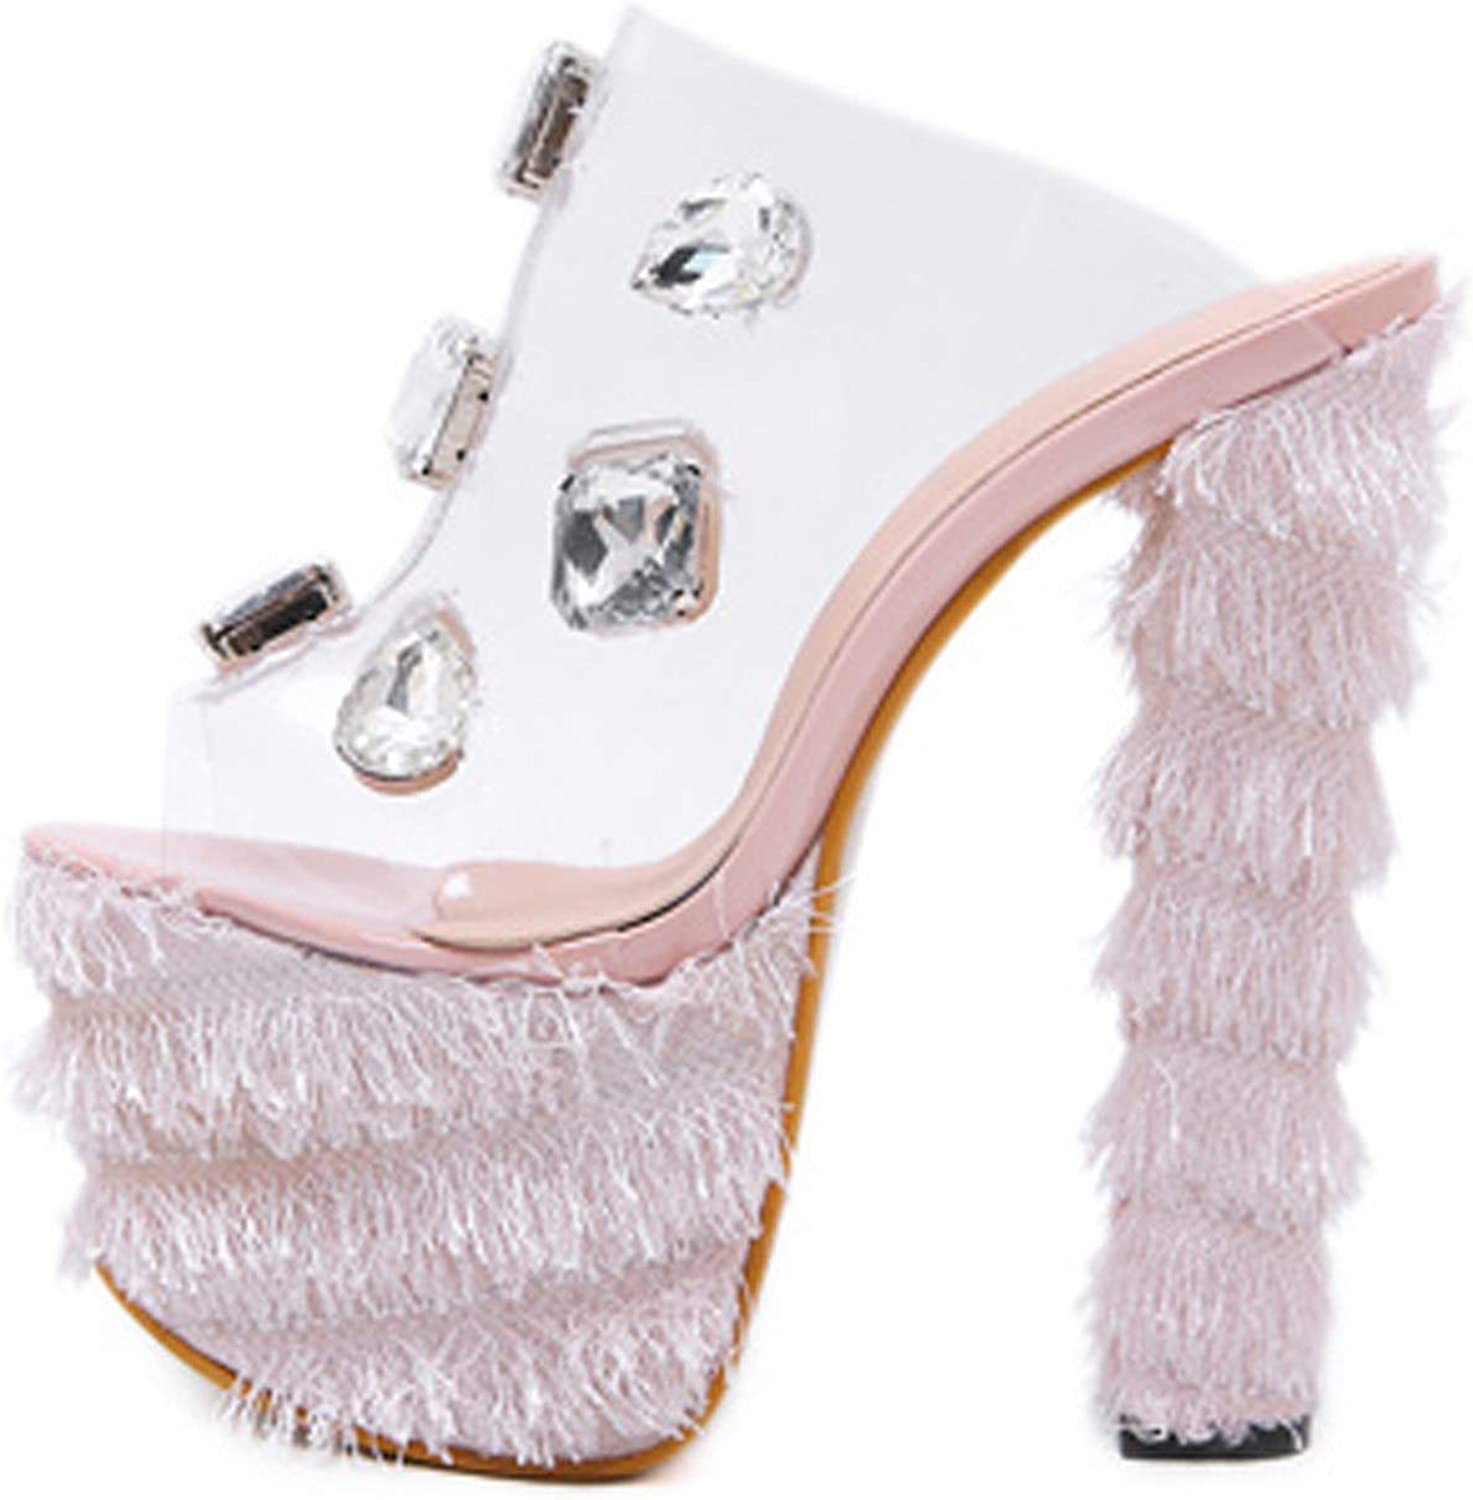 PVC Sandals Crystal Open Toed Sexy Spike Heels 16Cm Crystal Sandals Pumps Pink, Black